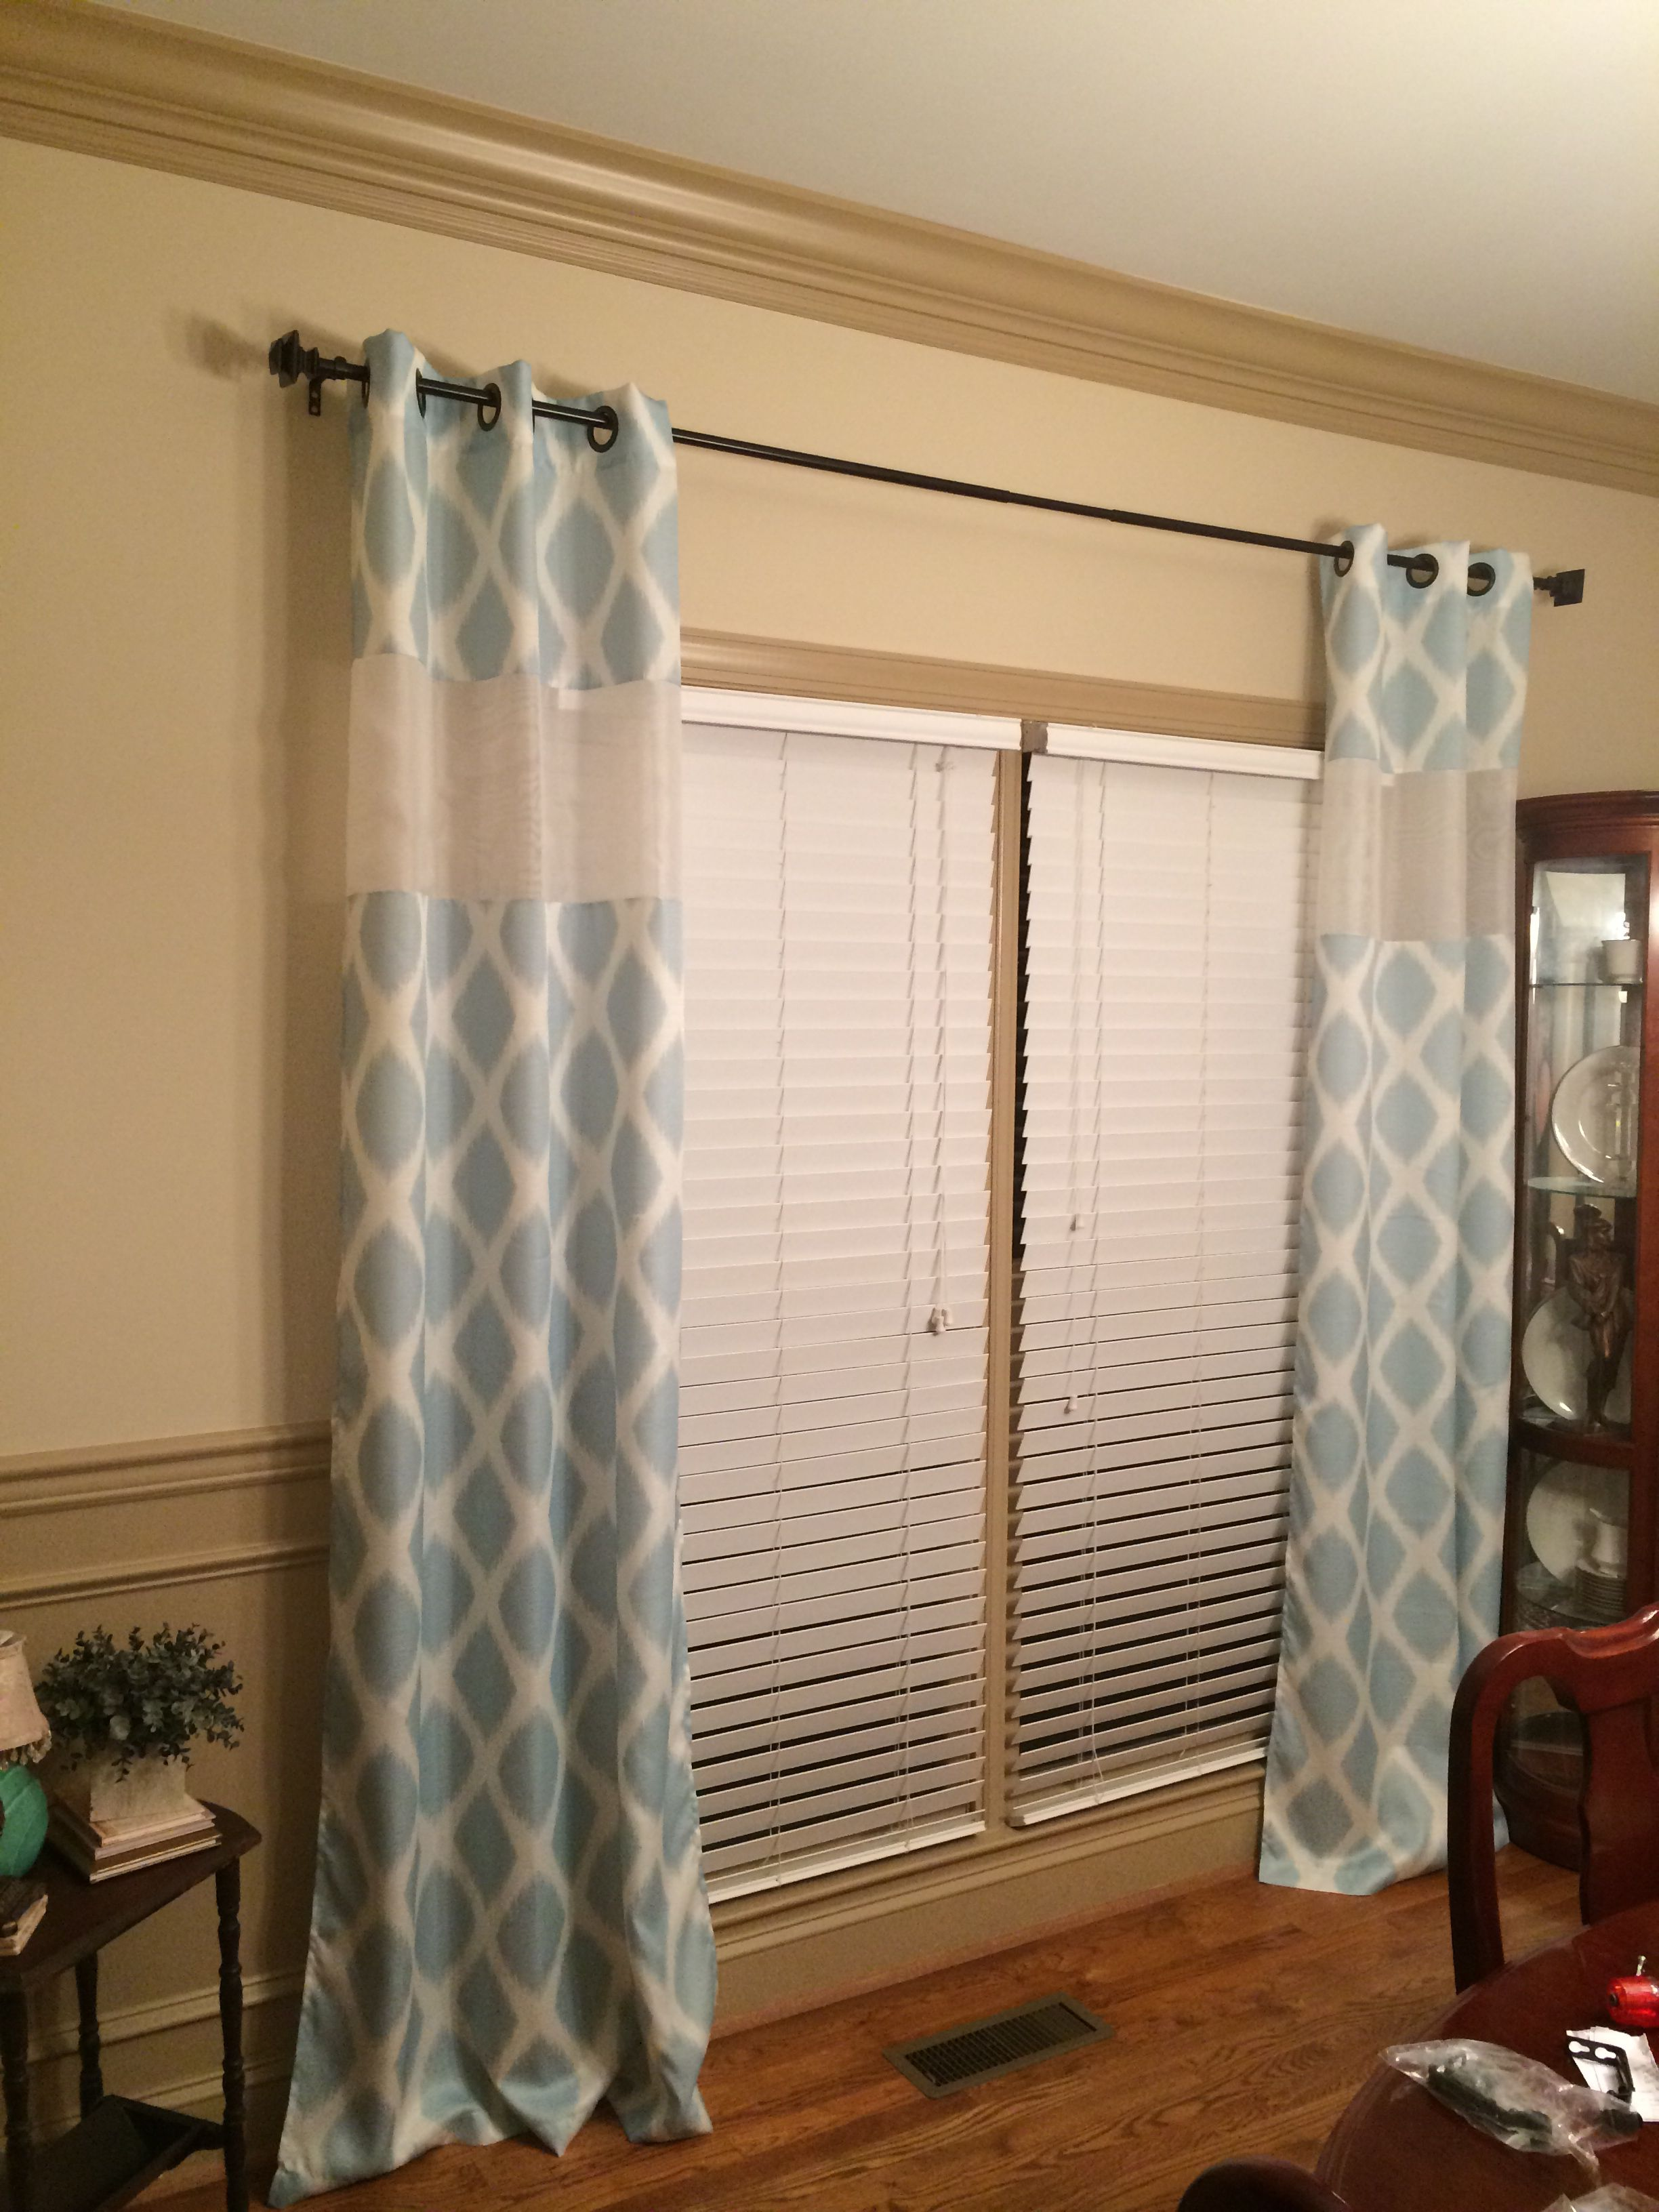 Where Can I Buy Cheap Curtains Drapes Too Short Buy Cheap Sheers At Ross Tjmaxx And Cut Drapes